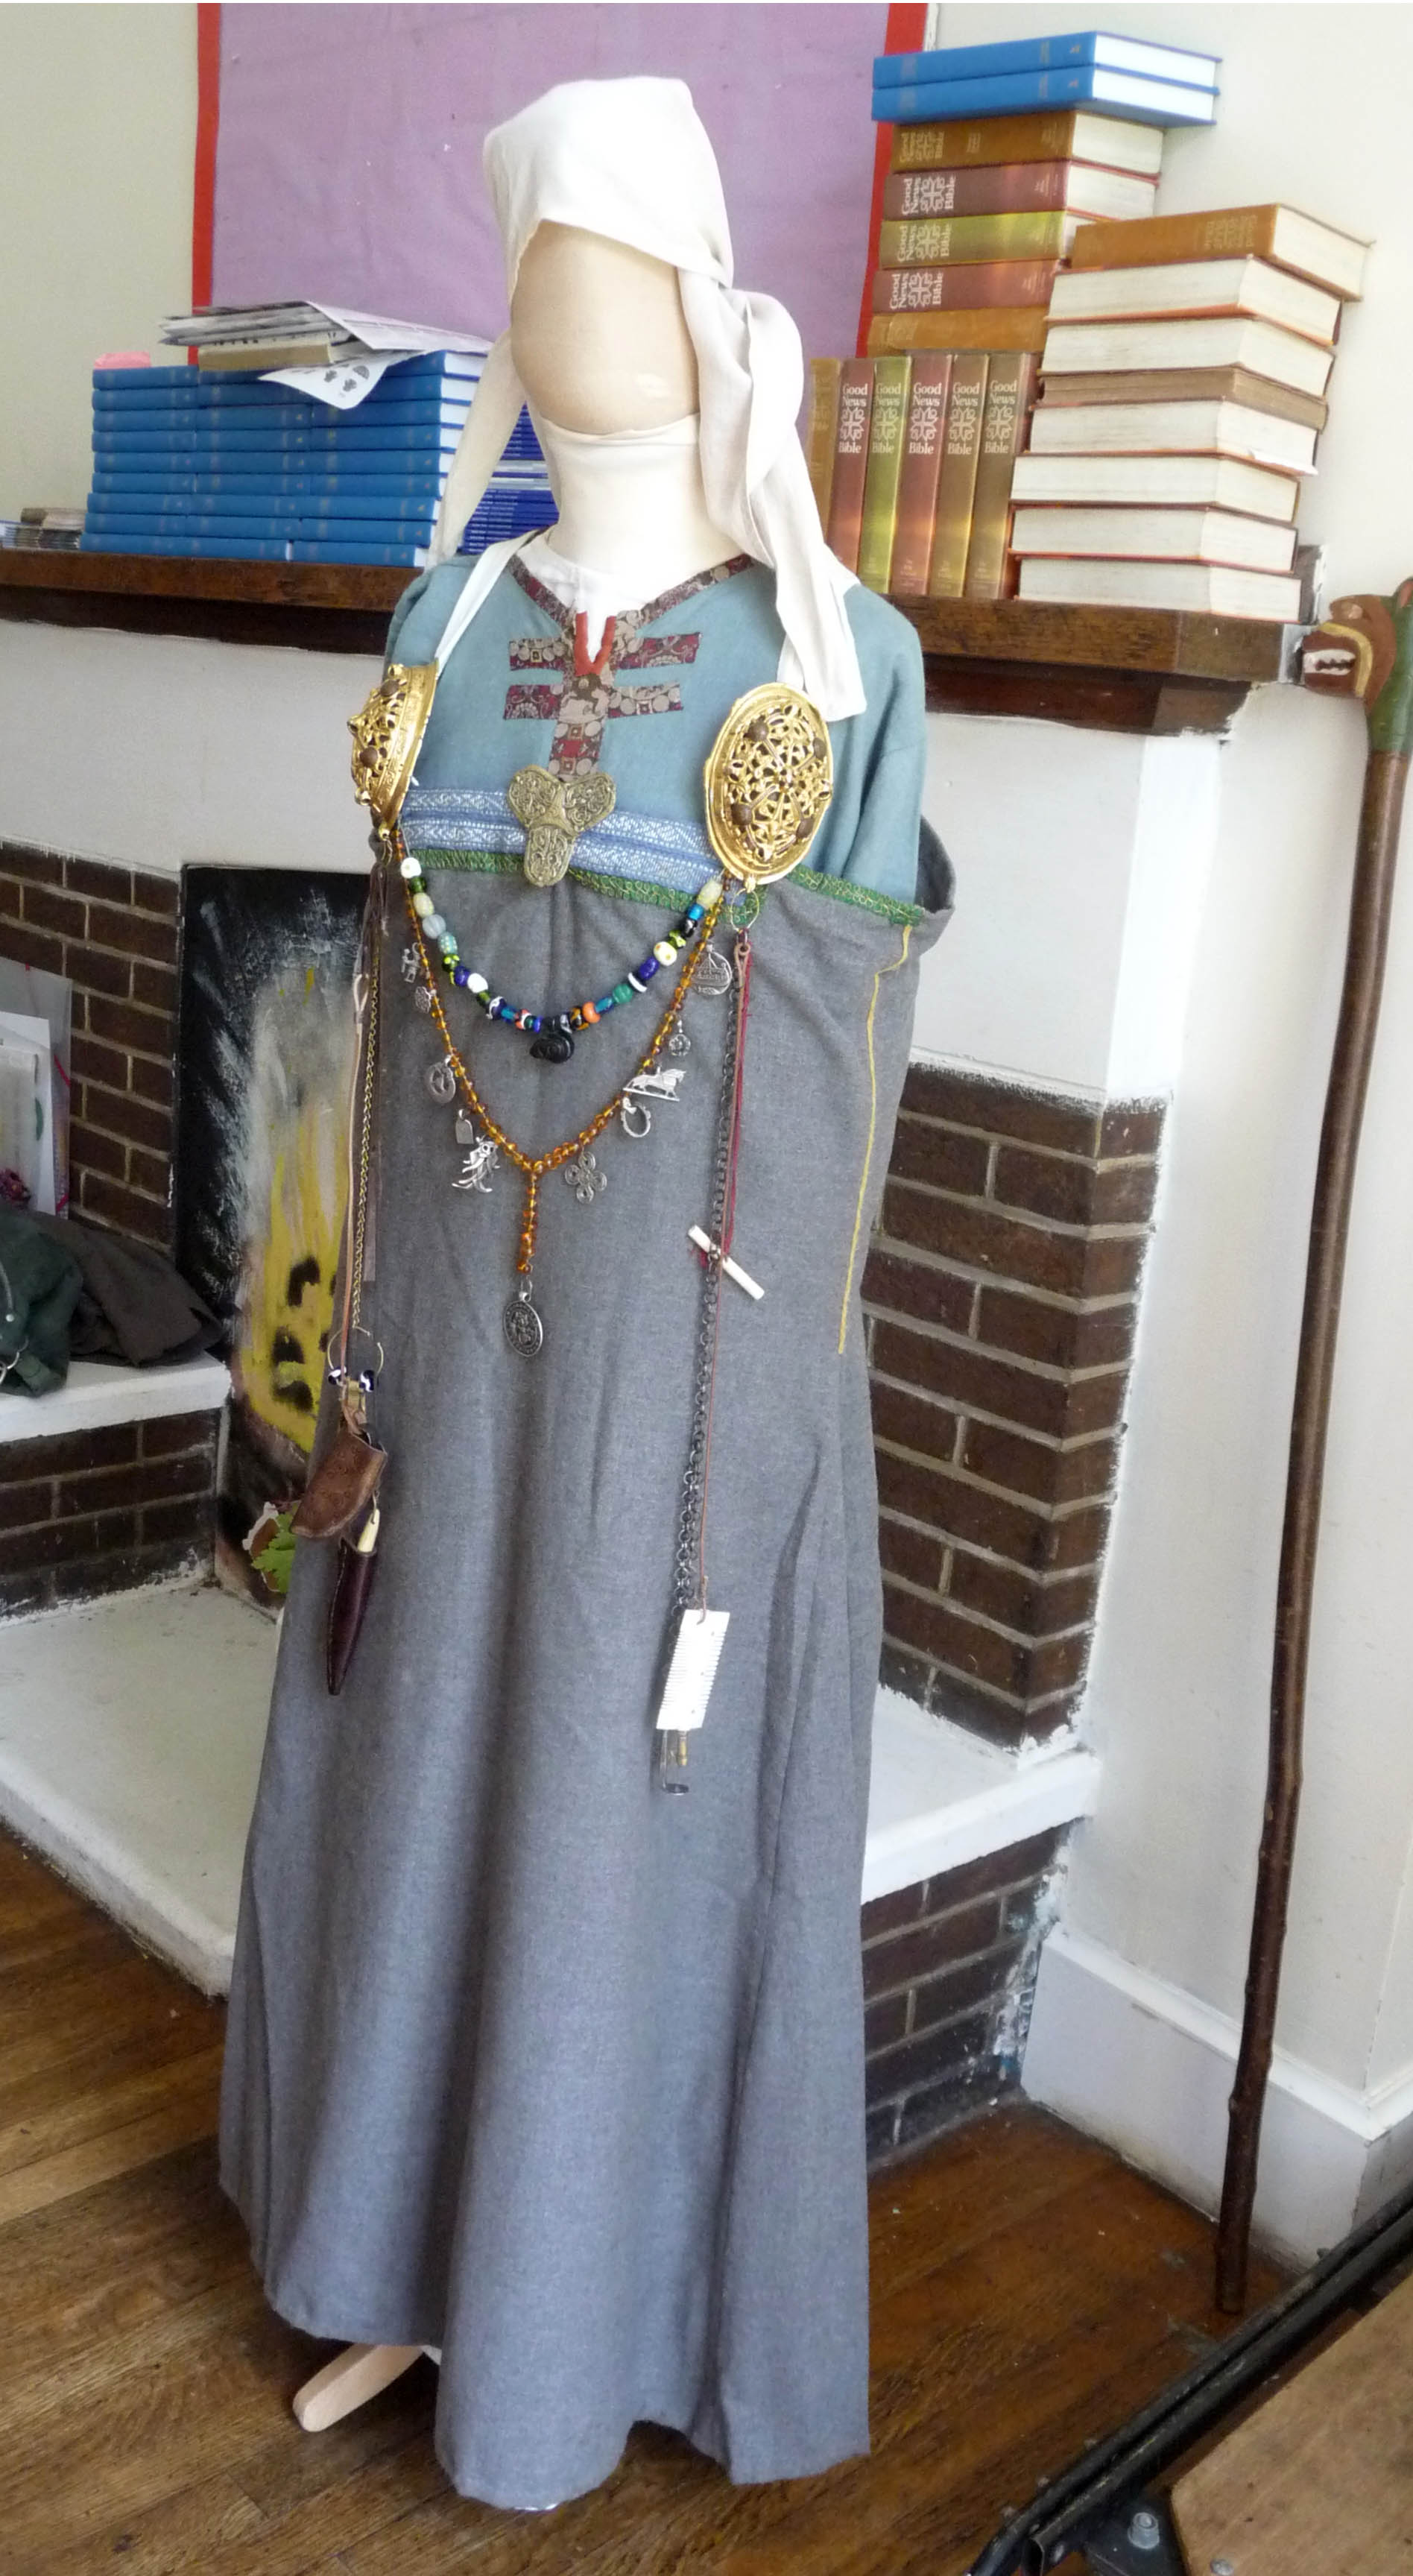 clothes that a rich Viking woman might wear